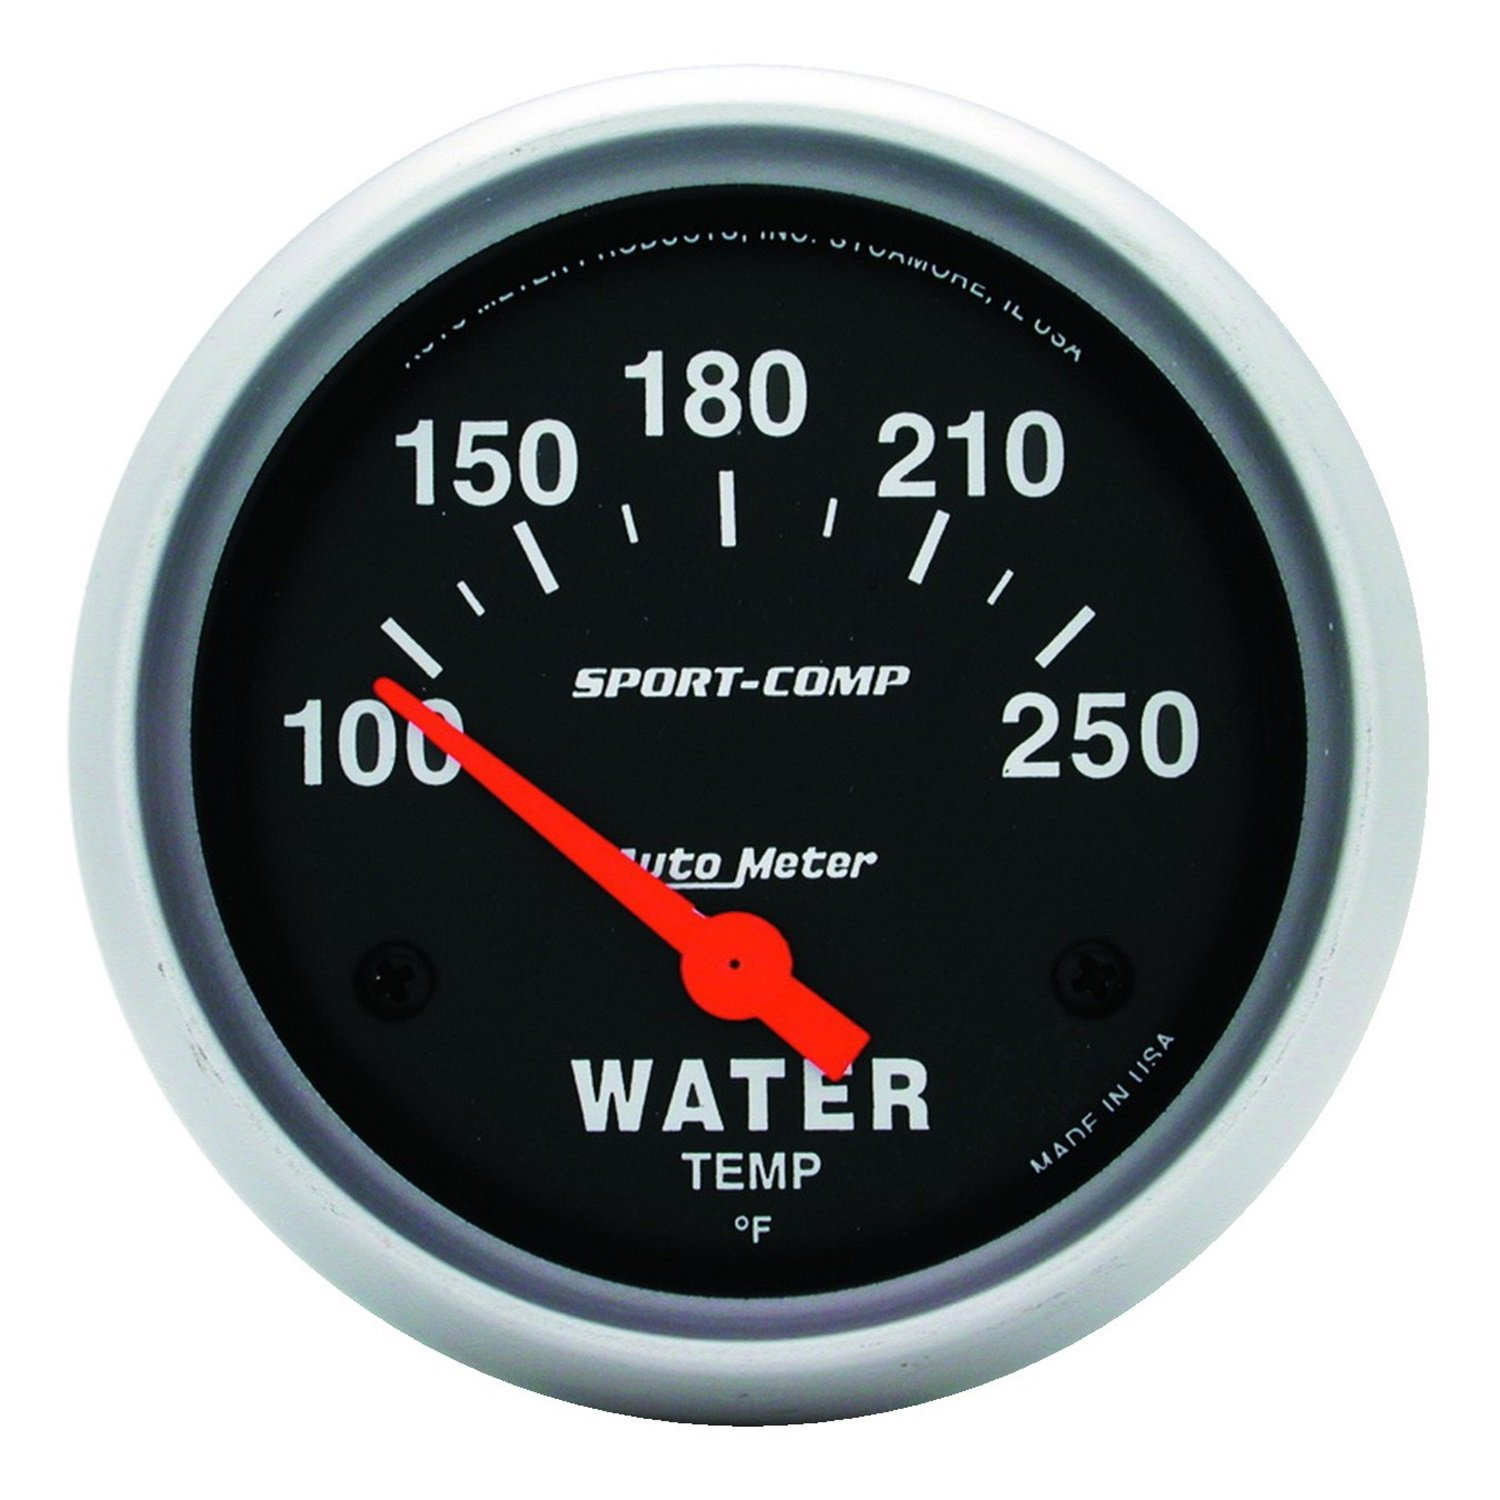 Auto Meter 3531 Sport-Comp Electric Water Temperature Gauge by Auto Meter